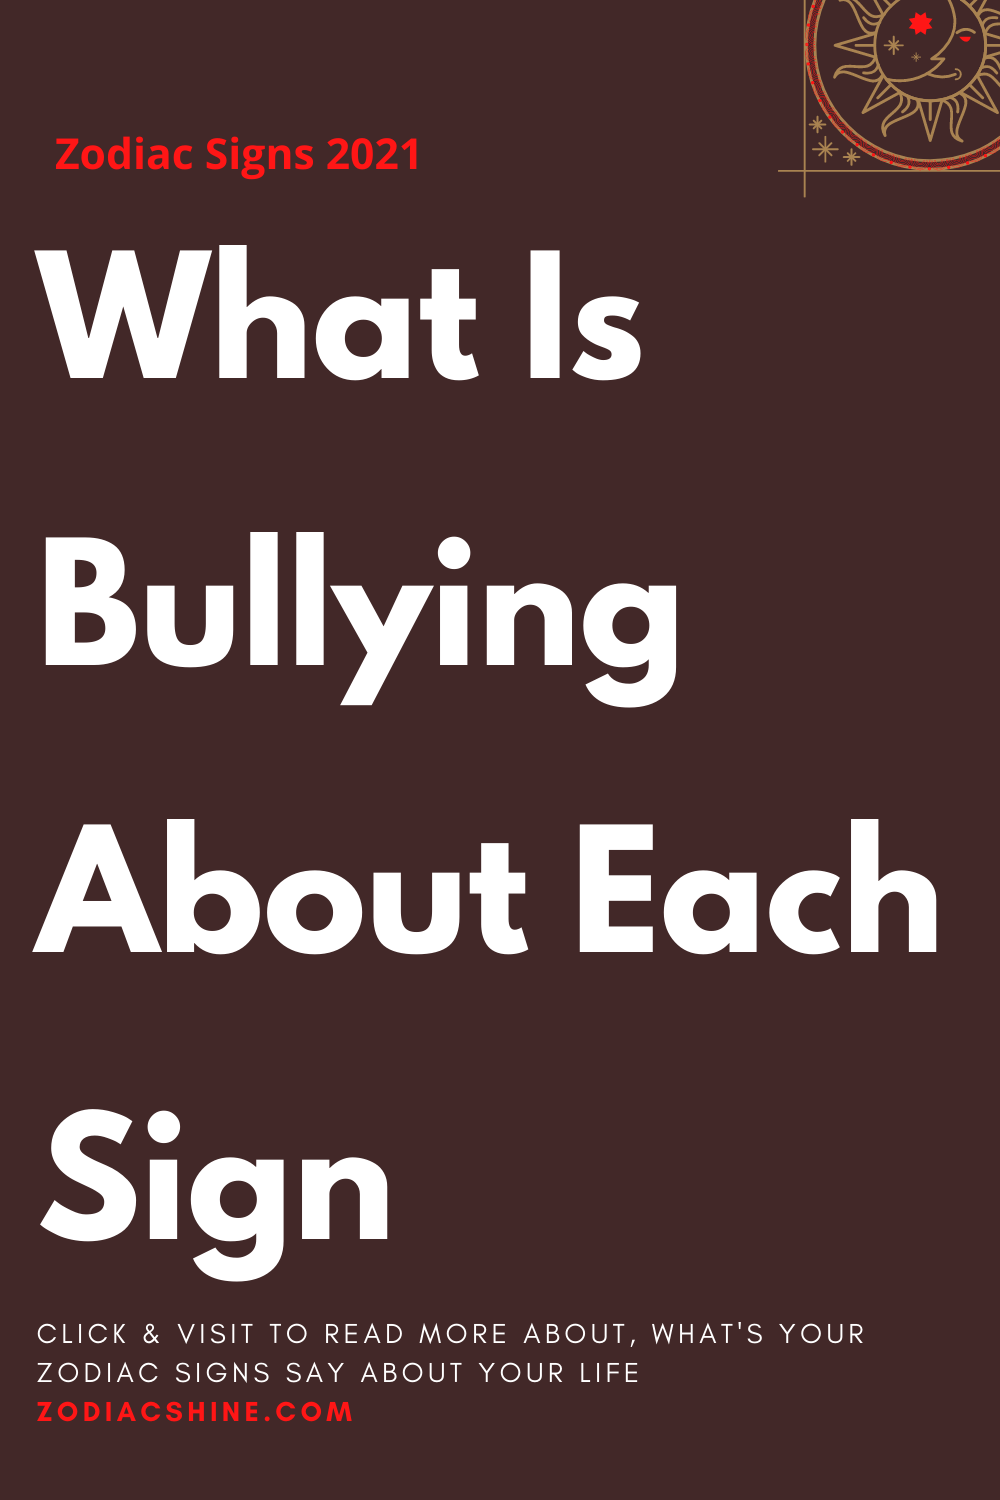 What Is Bullying About Each Sign